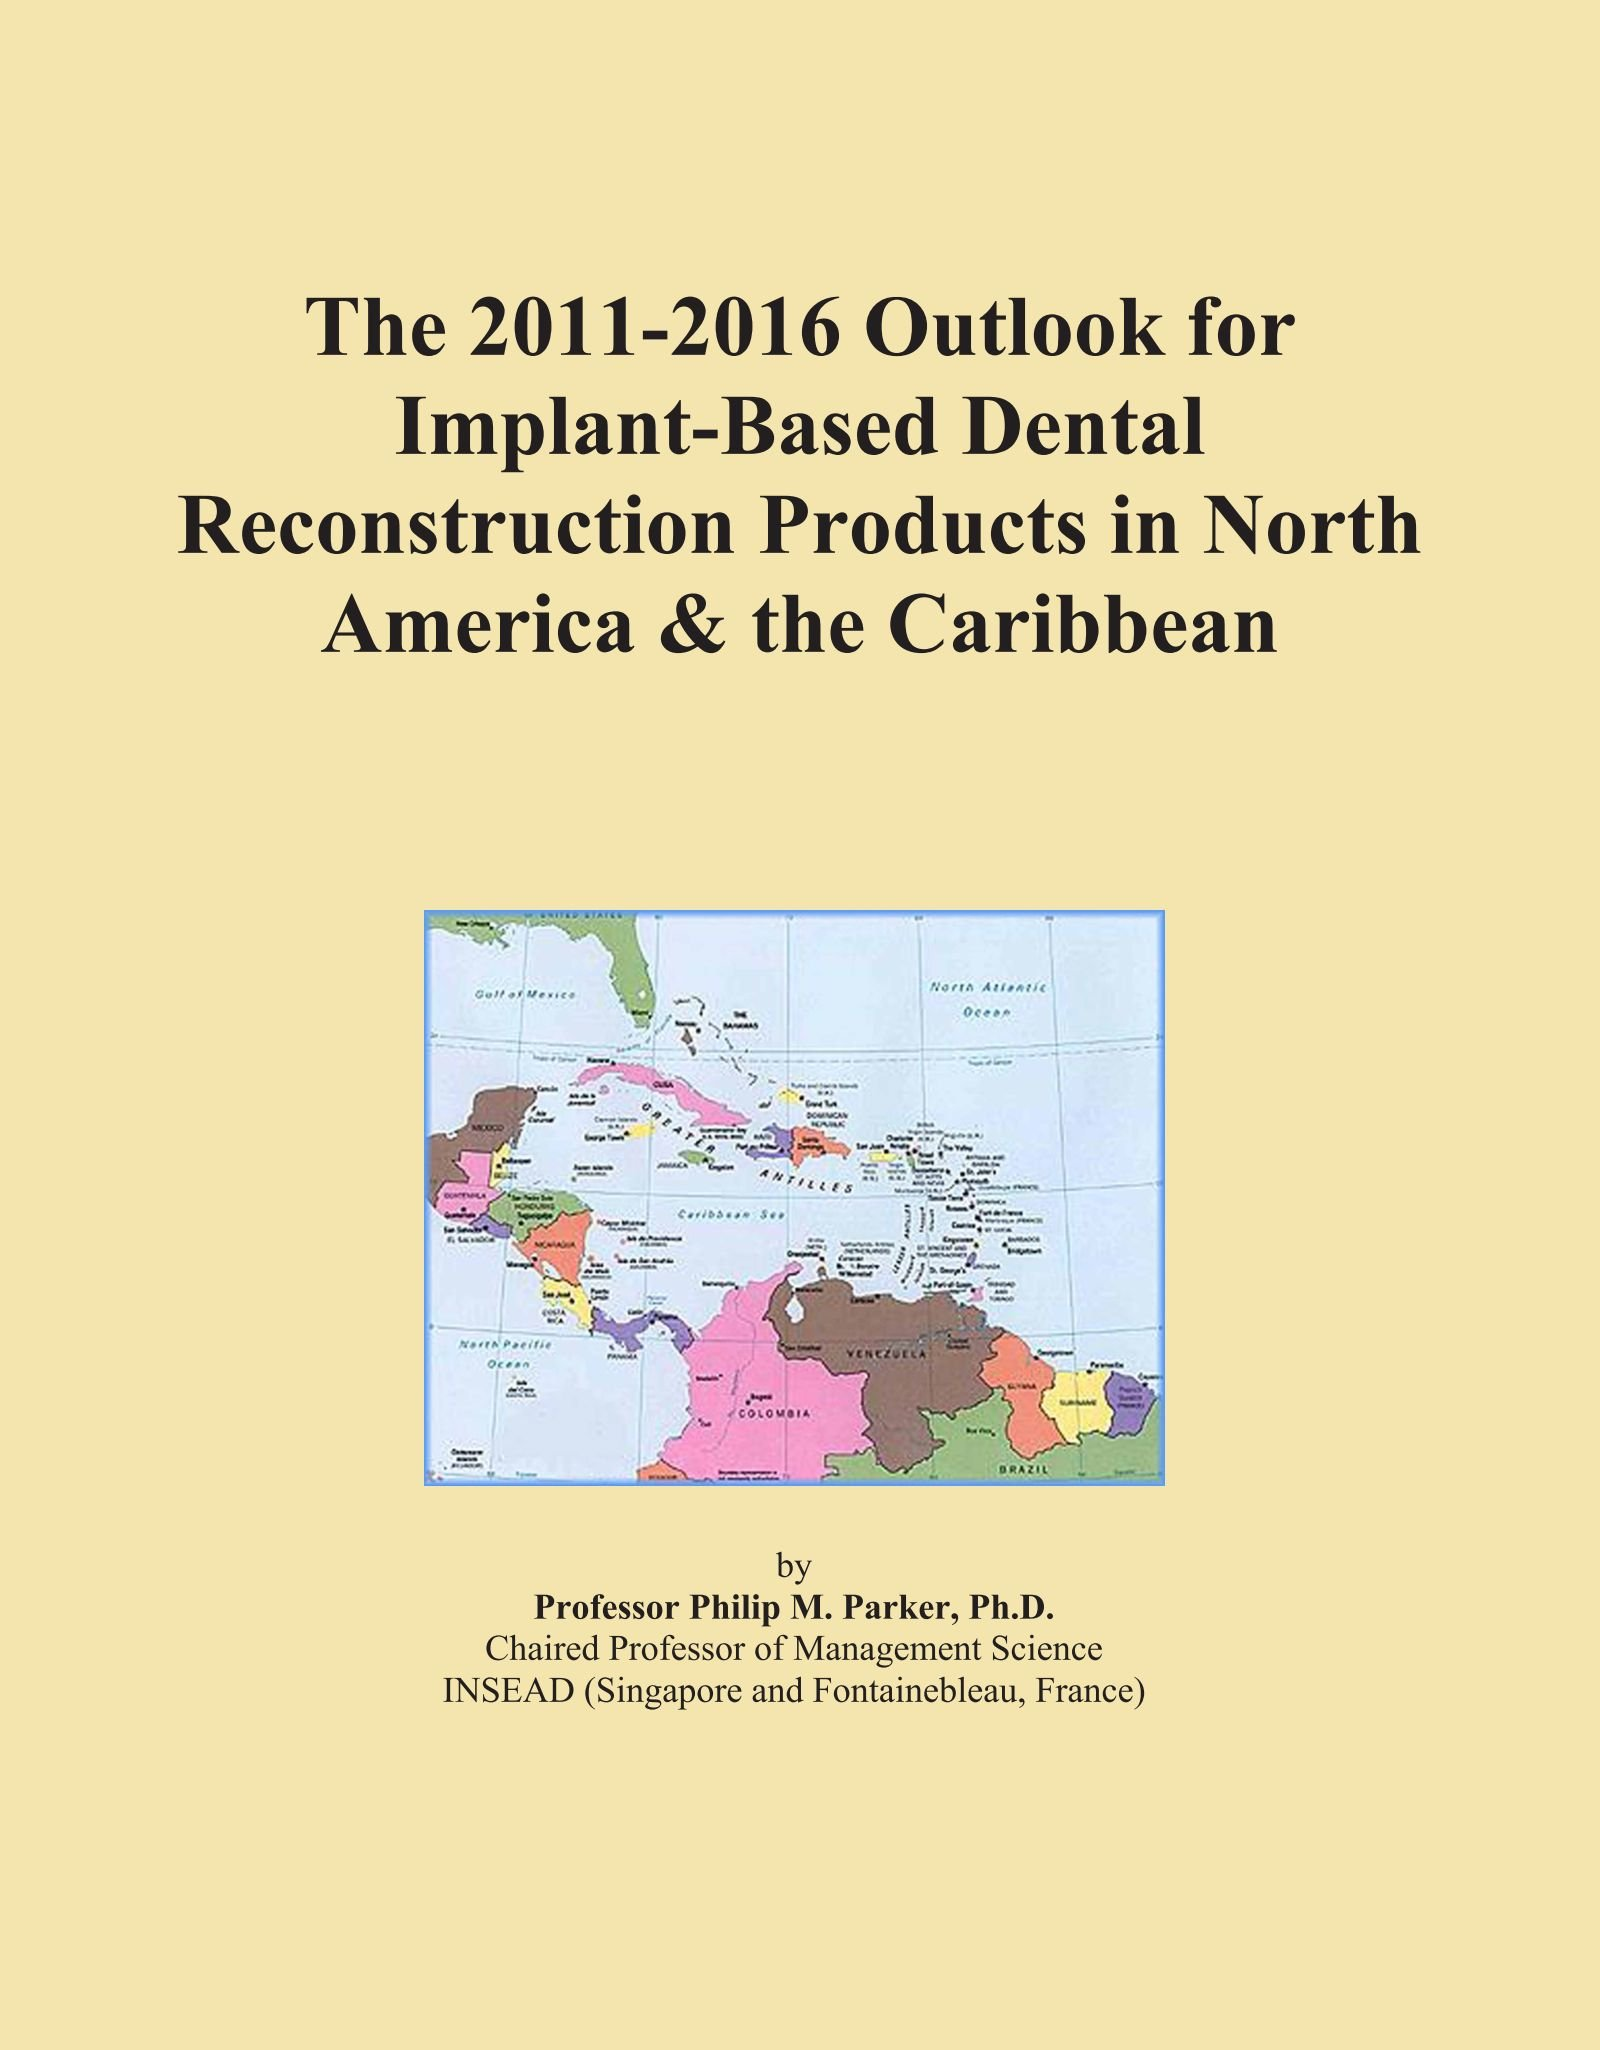 The 2011-2016 Outlook for Implant-Based Dental Reconstruction Products in North America & the Caribbean